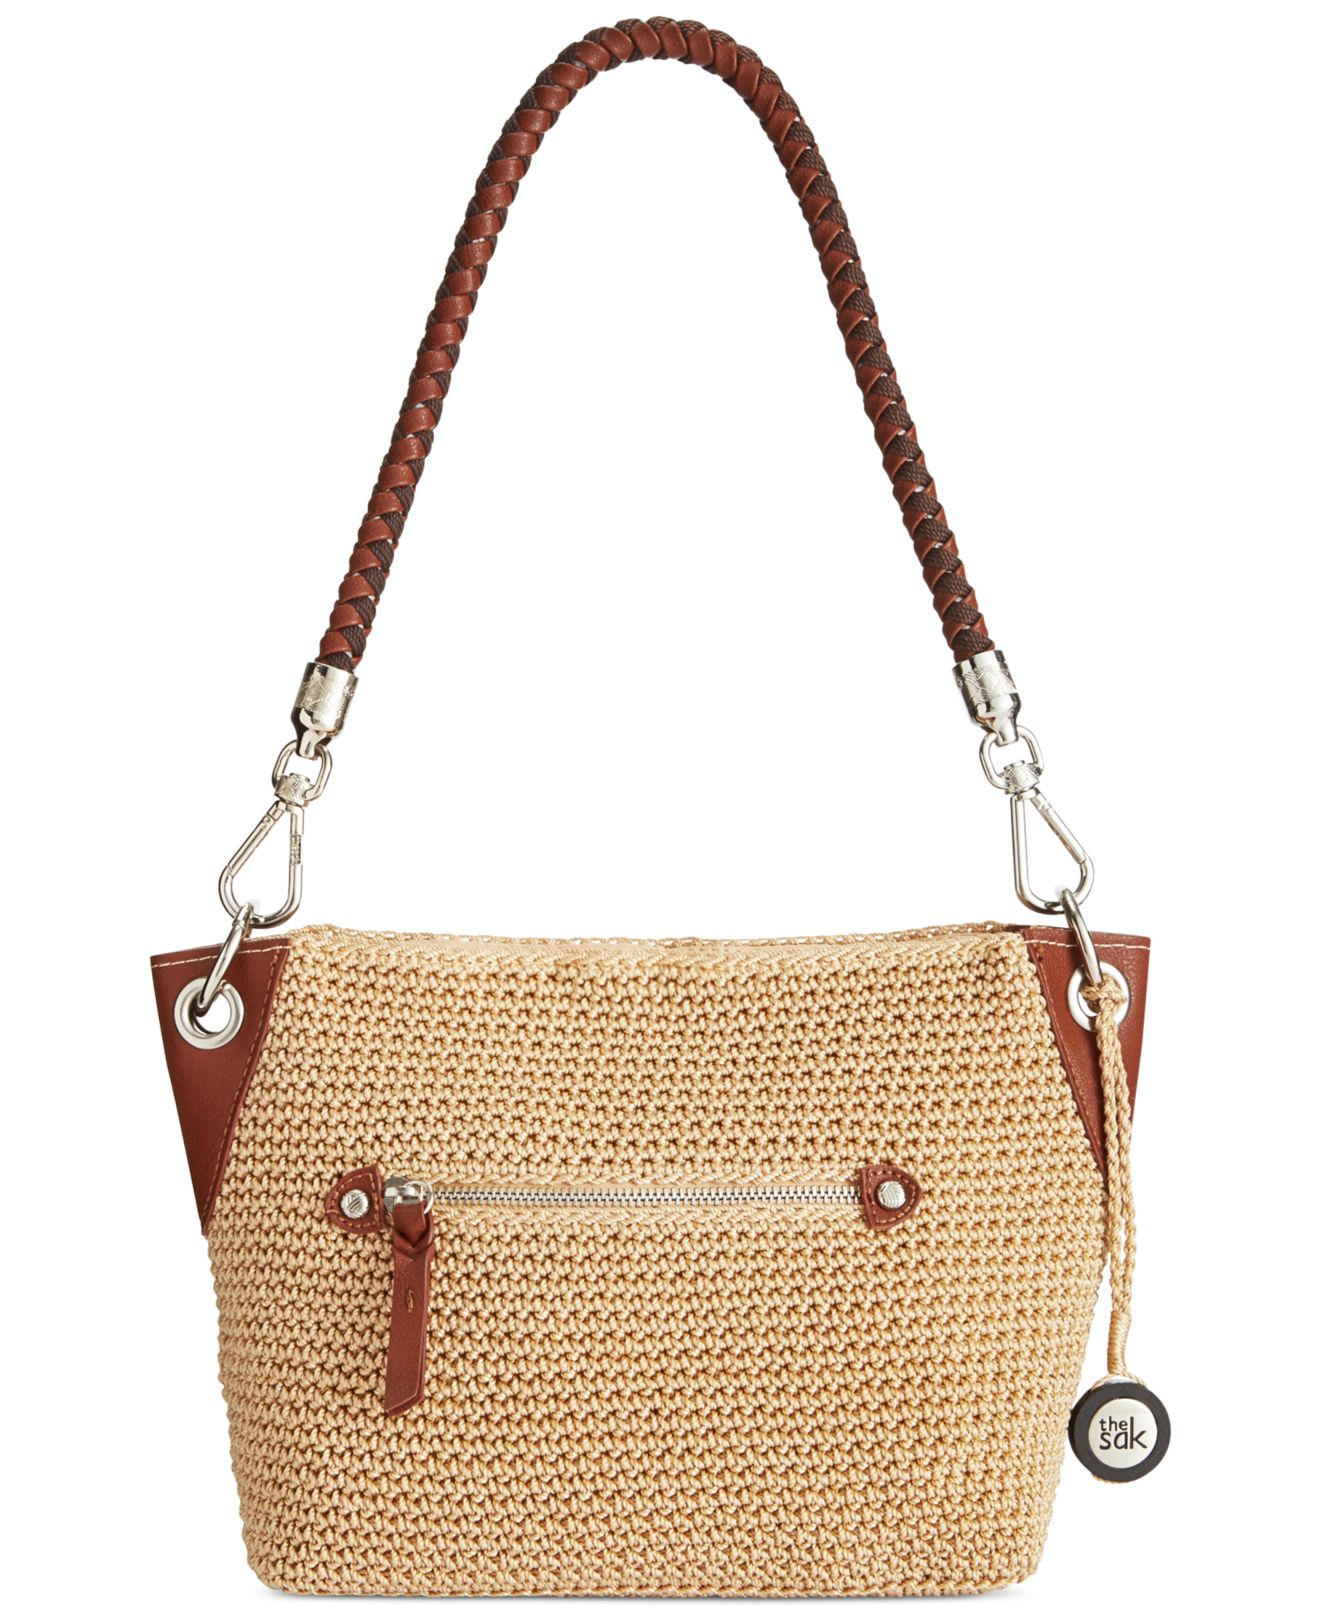 Sak Crochet Bag : The sak Portola Crochet Bag in Natural Lyst